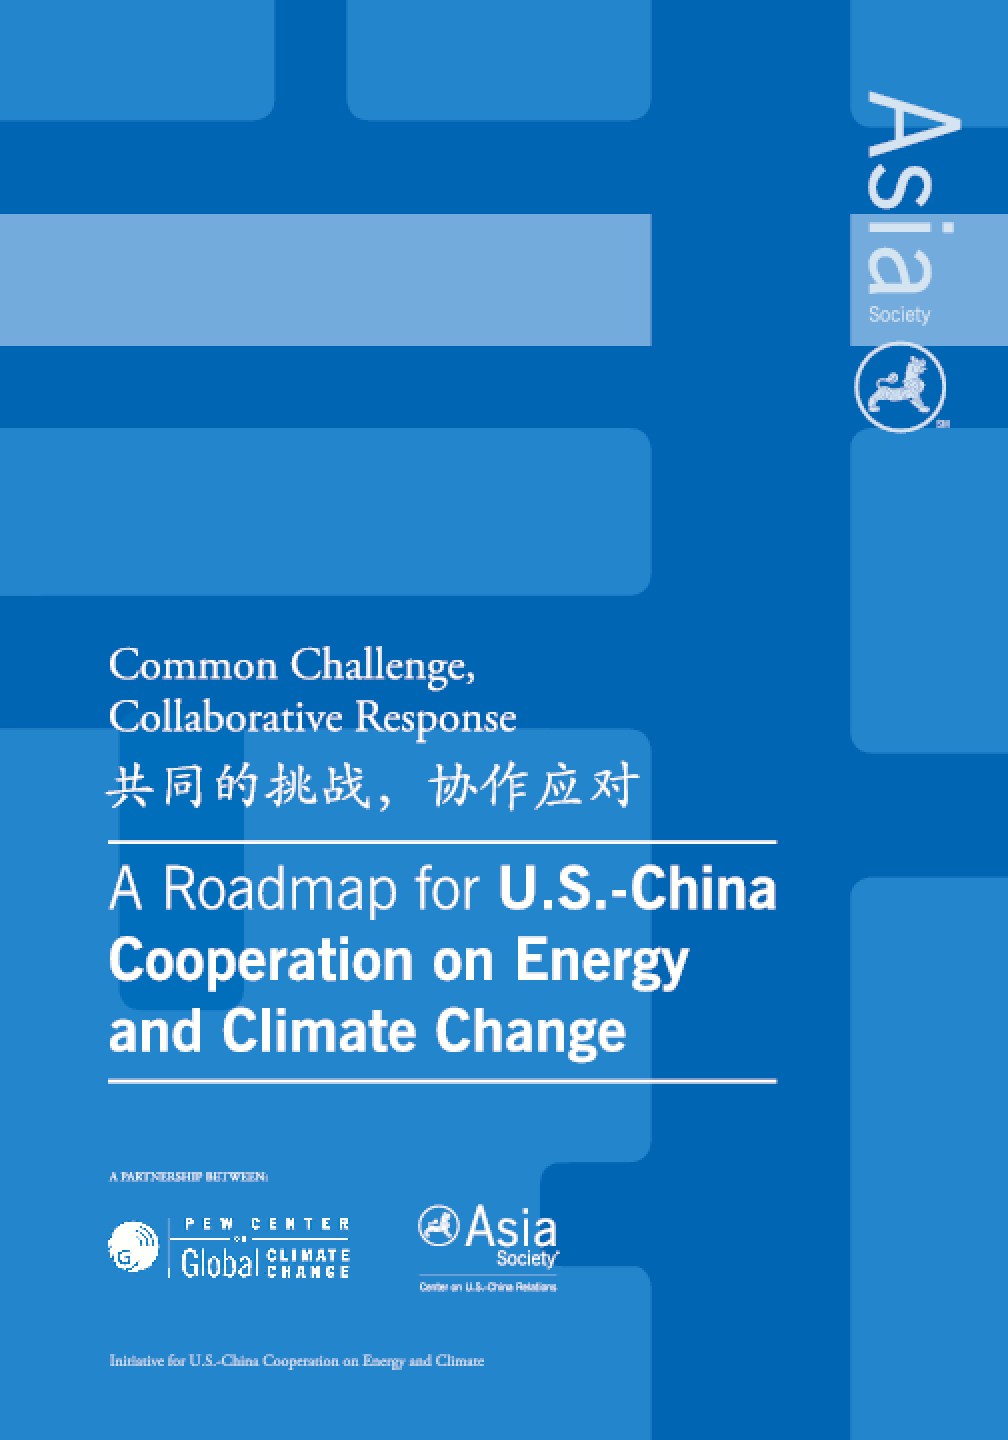 Common Challenge, Collaborative Response: A Roadmap for U.S.-China Cooperation on Energy and Climate Change